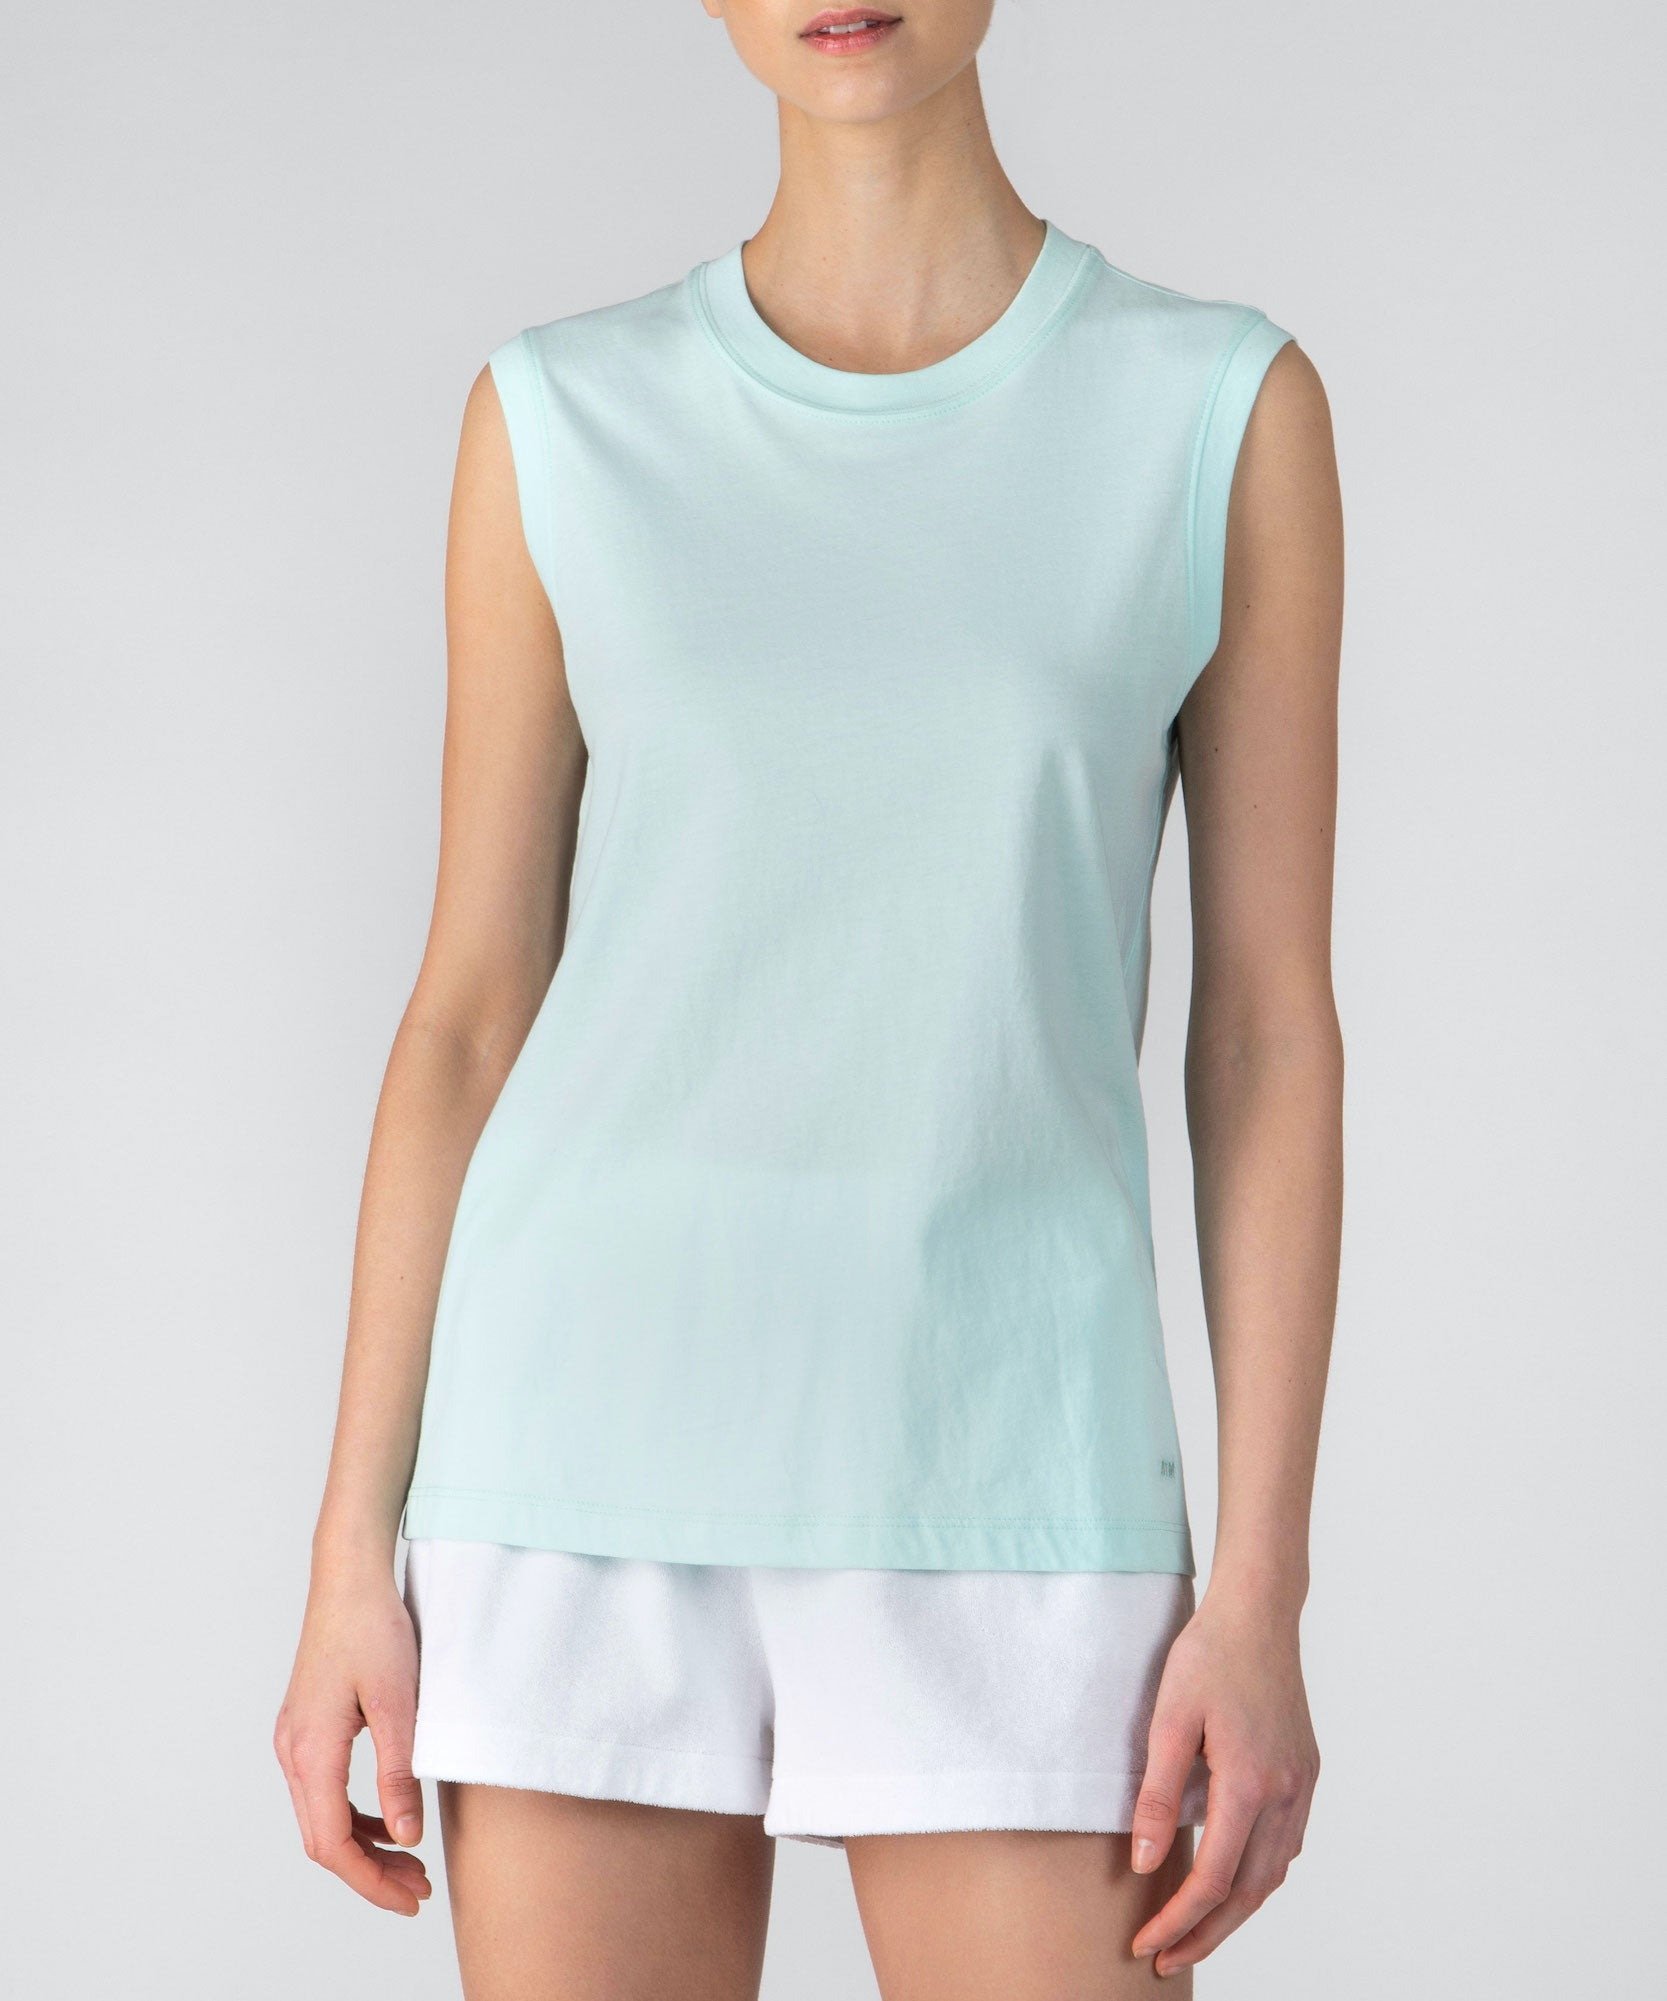 Bleached Aqua Classic Jersey Sleeveless Boy Tee - Women's Cotton Sleeveless T-shirt by ATM Anthony Thomas Melillo